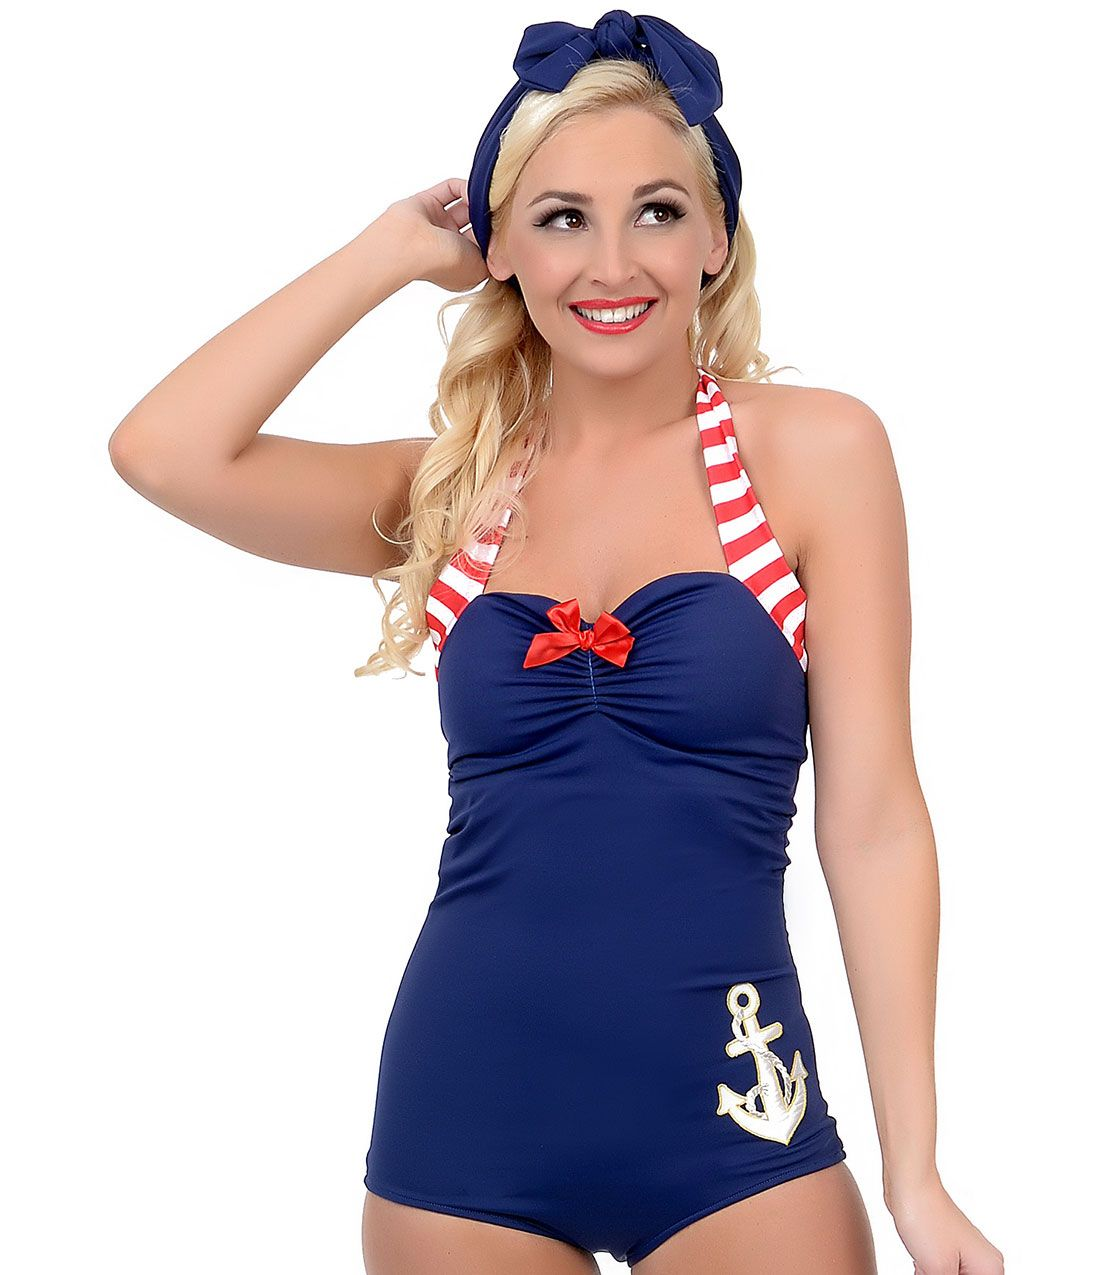 Retro Style Bathing Suits Part - 18: Vintage 1950s Style Pin-Up Navy Anchors Away Maillot Swimsuit $52.00 AT  Vintagedancer.com